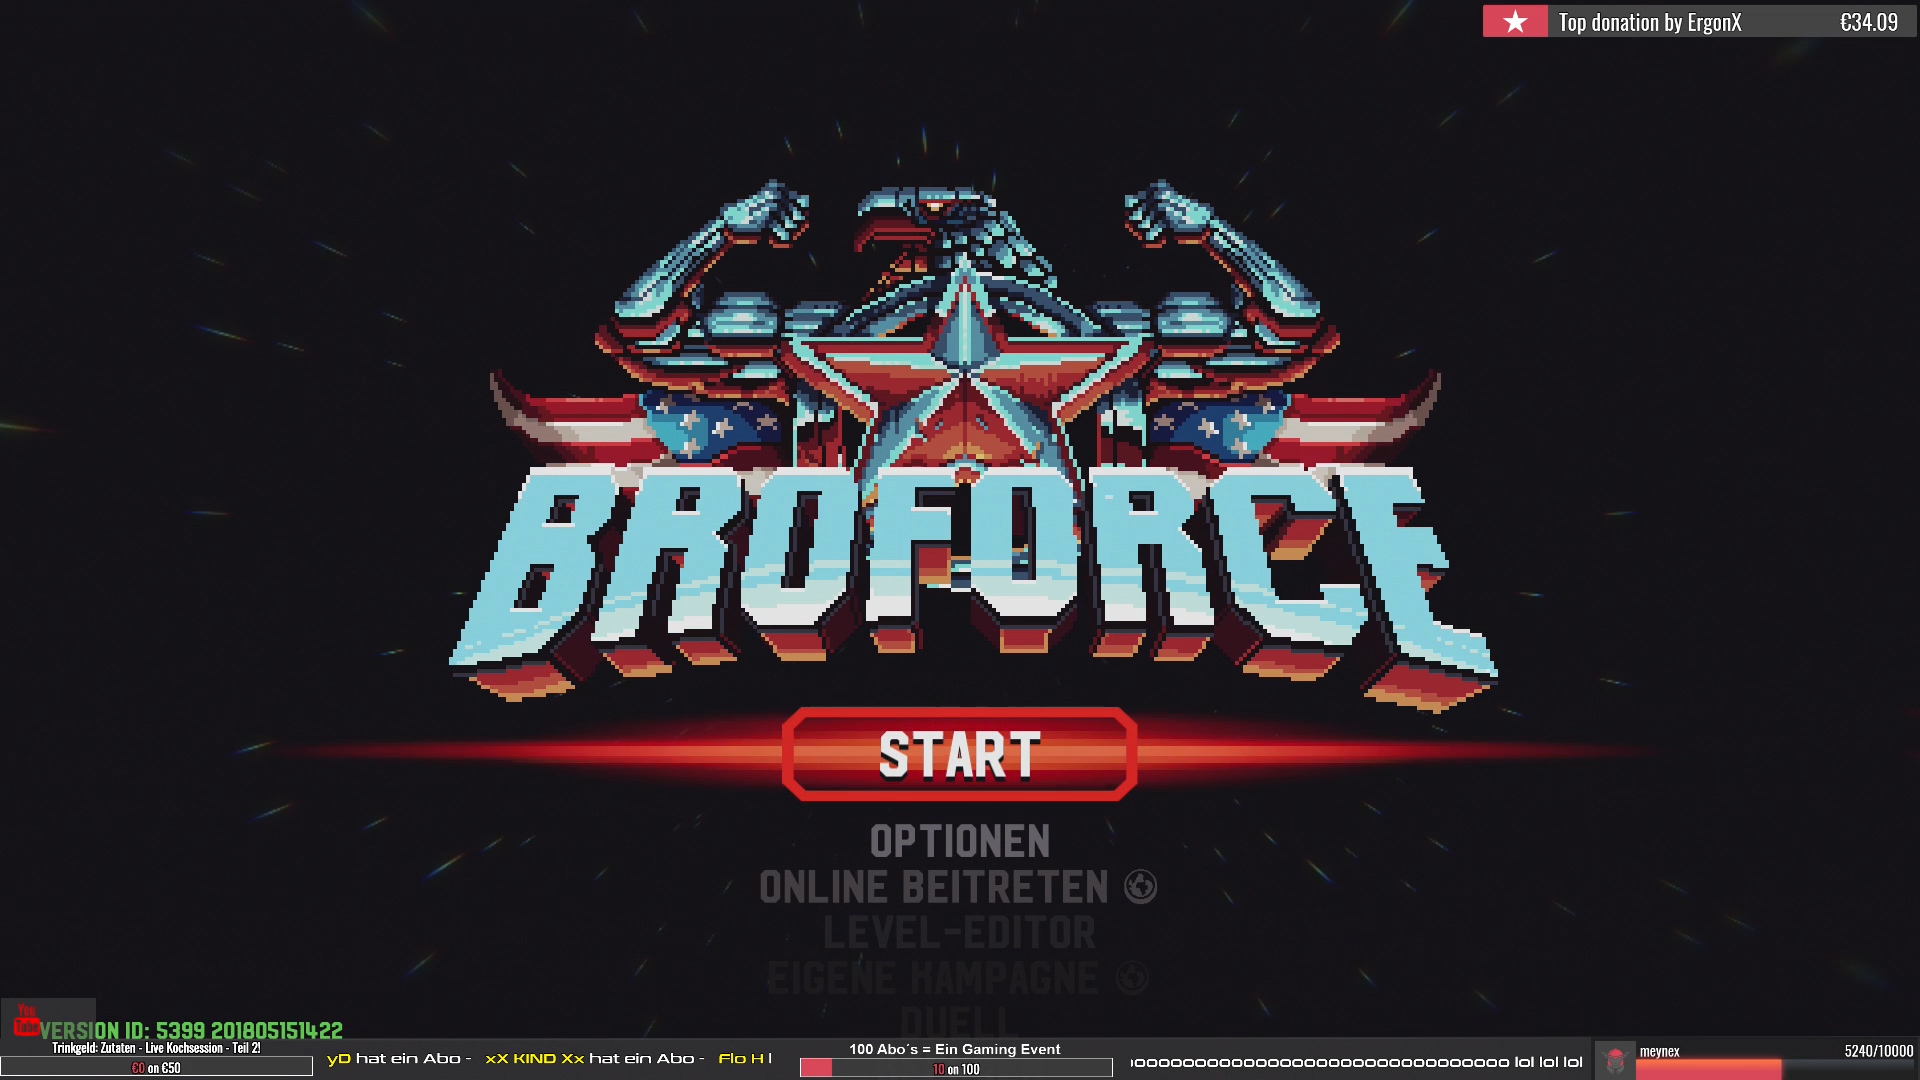 Das Broforce Game